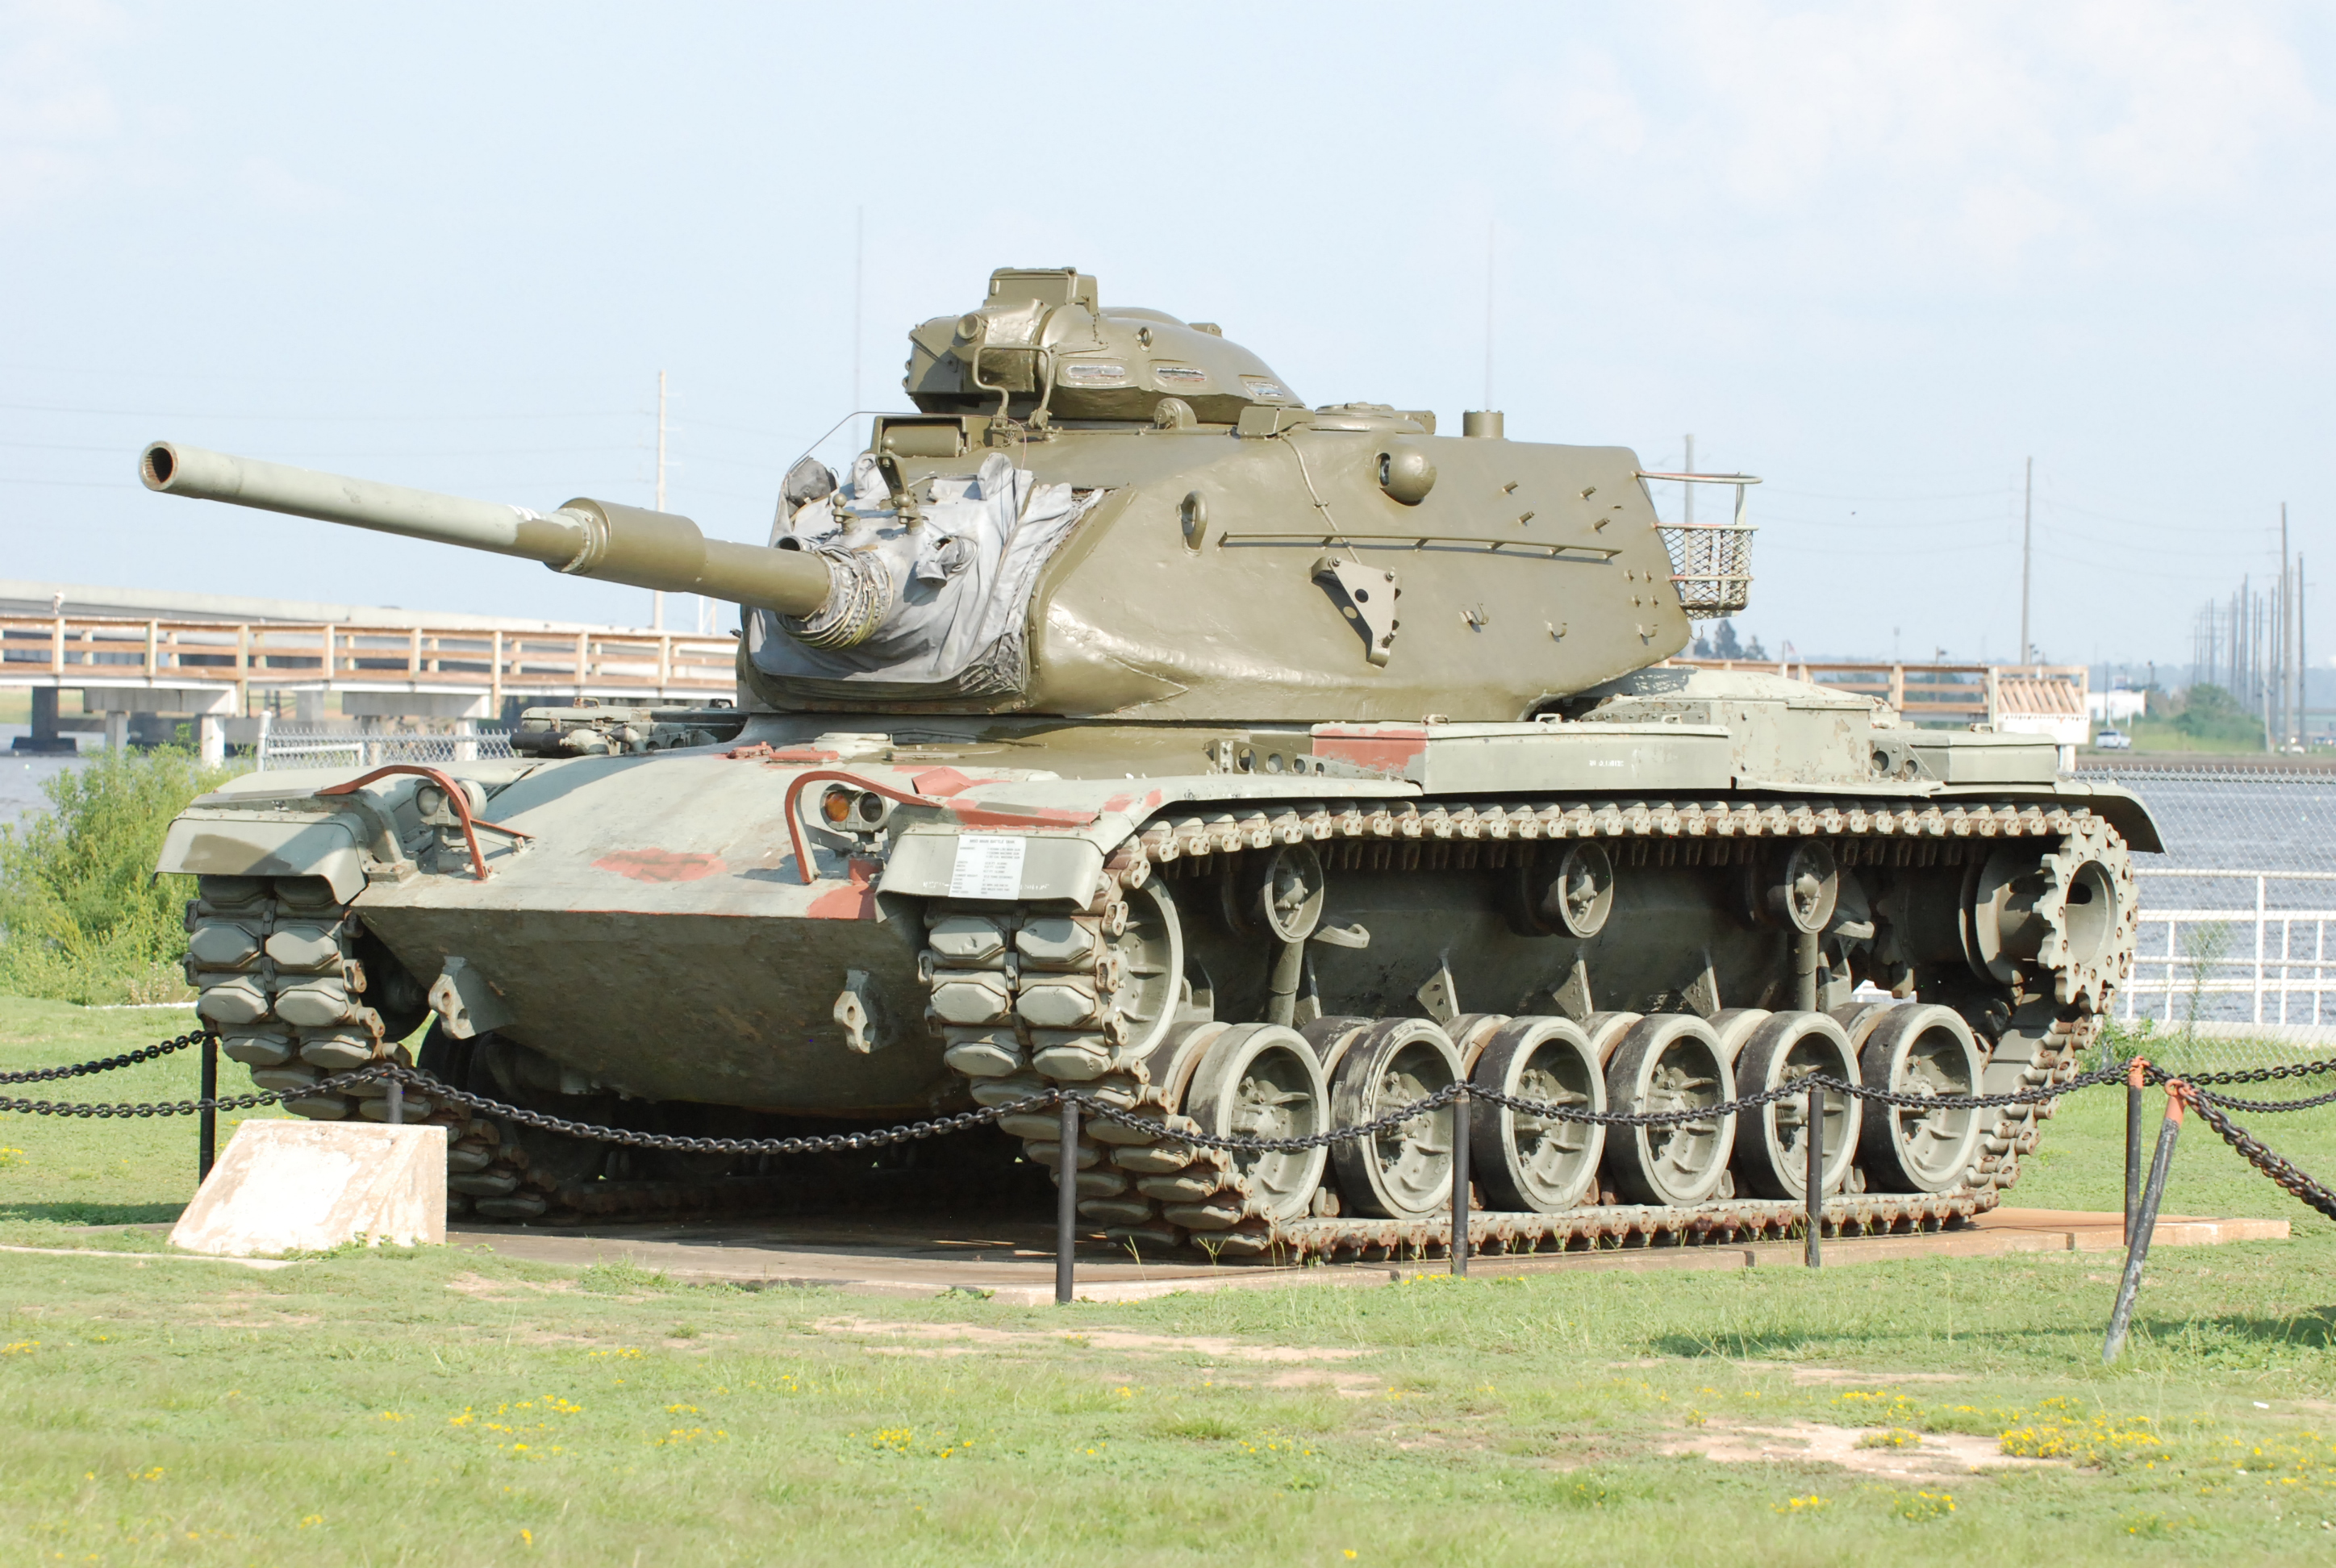 Description tanks at the uss alabama - mobile, al - 002